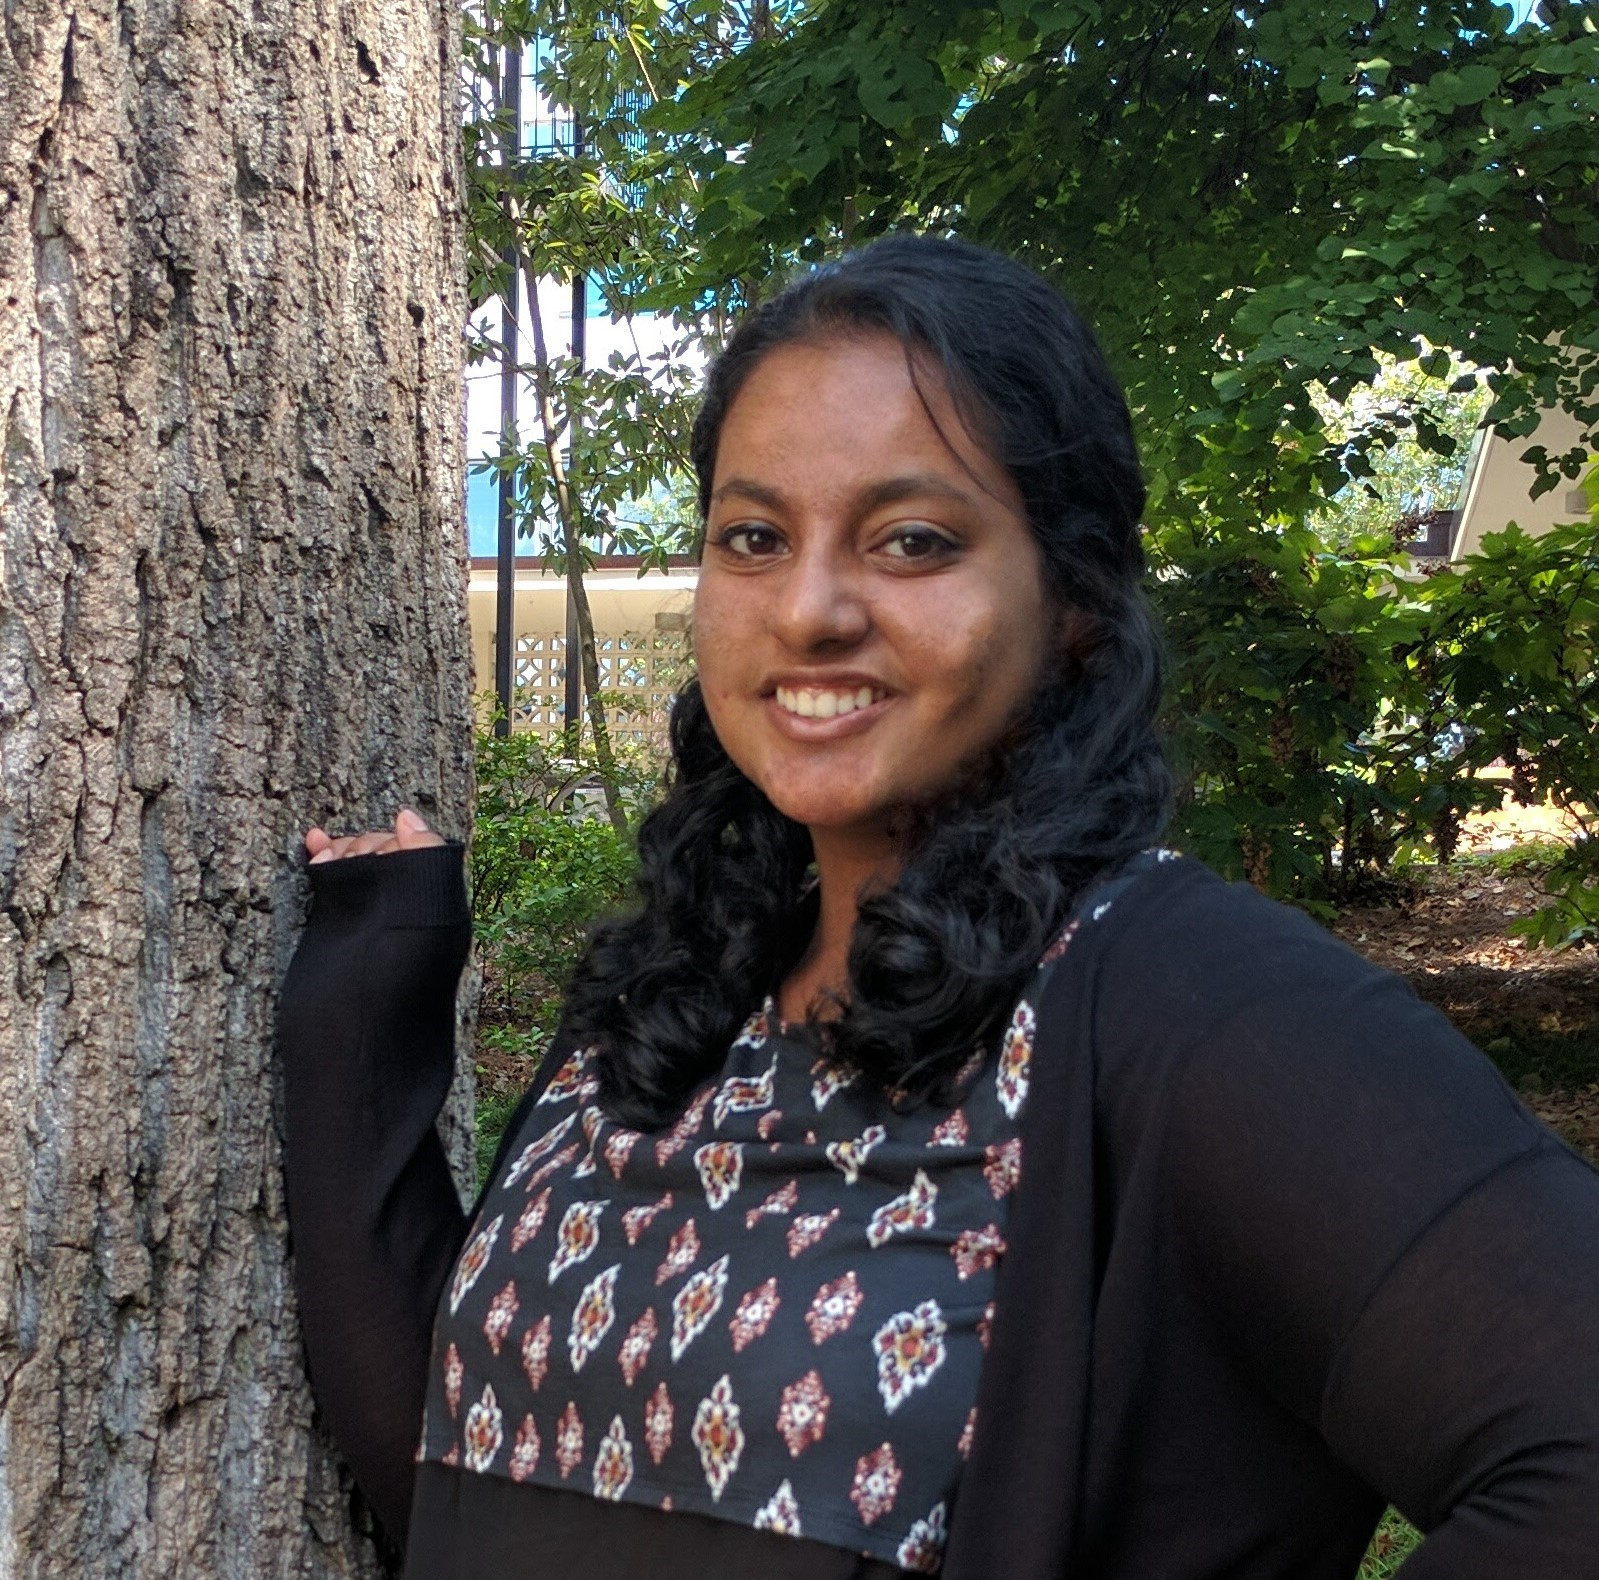 Namrata Verghese      Co-Editor-in-Chief    Namrata Verghese is a senior in Emory College, pursuing a double major in Psychology/Linguistics and English/Creative Writing. On campus, she's a research assistant and honors thesis student in the Fivush Family Narratives Lab, an IDEAS Fellow, and an undergraduate teaching assistant in the Interdisciplinary Studies Department. She's held internships in spaces ranging from Google to the U.S. House of Representatives, and is professionally interested in social impact across both the public and private sectors. She loves coffee, NPR, and everything Bollywood.